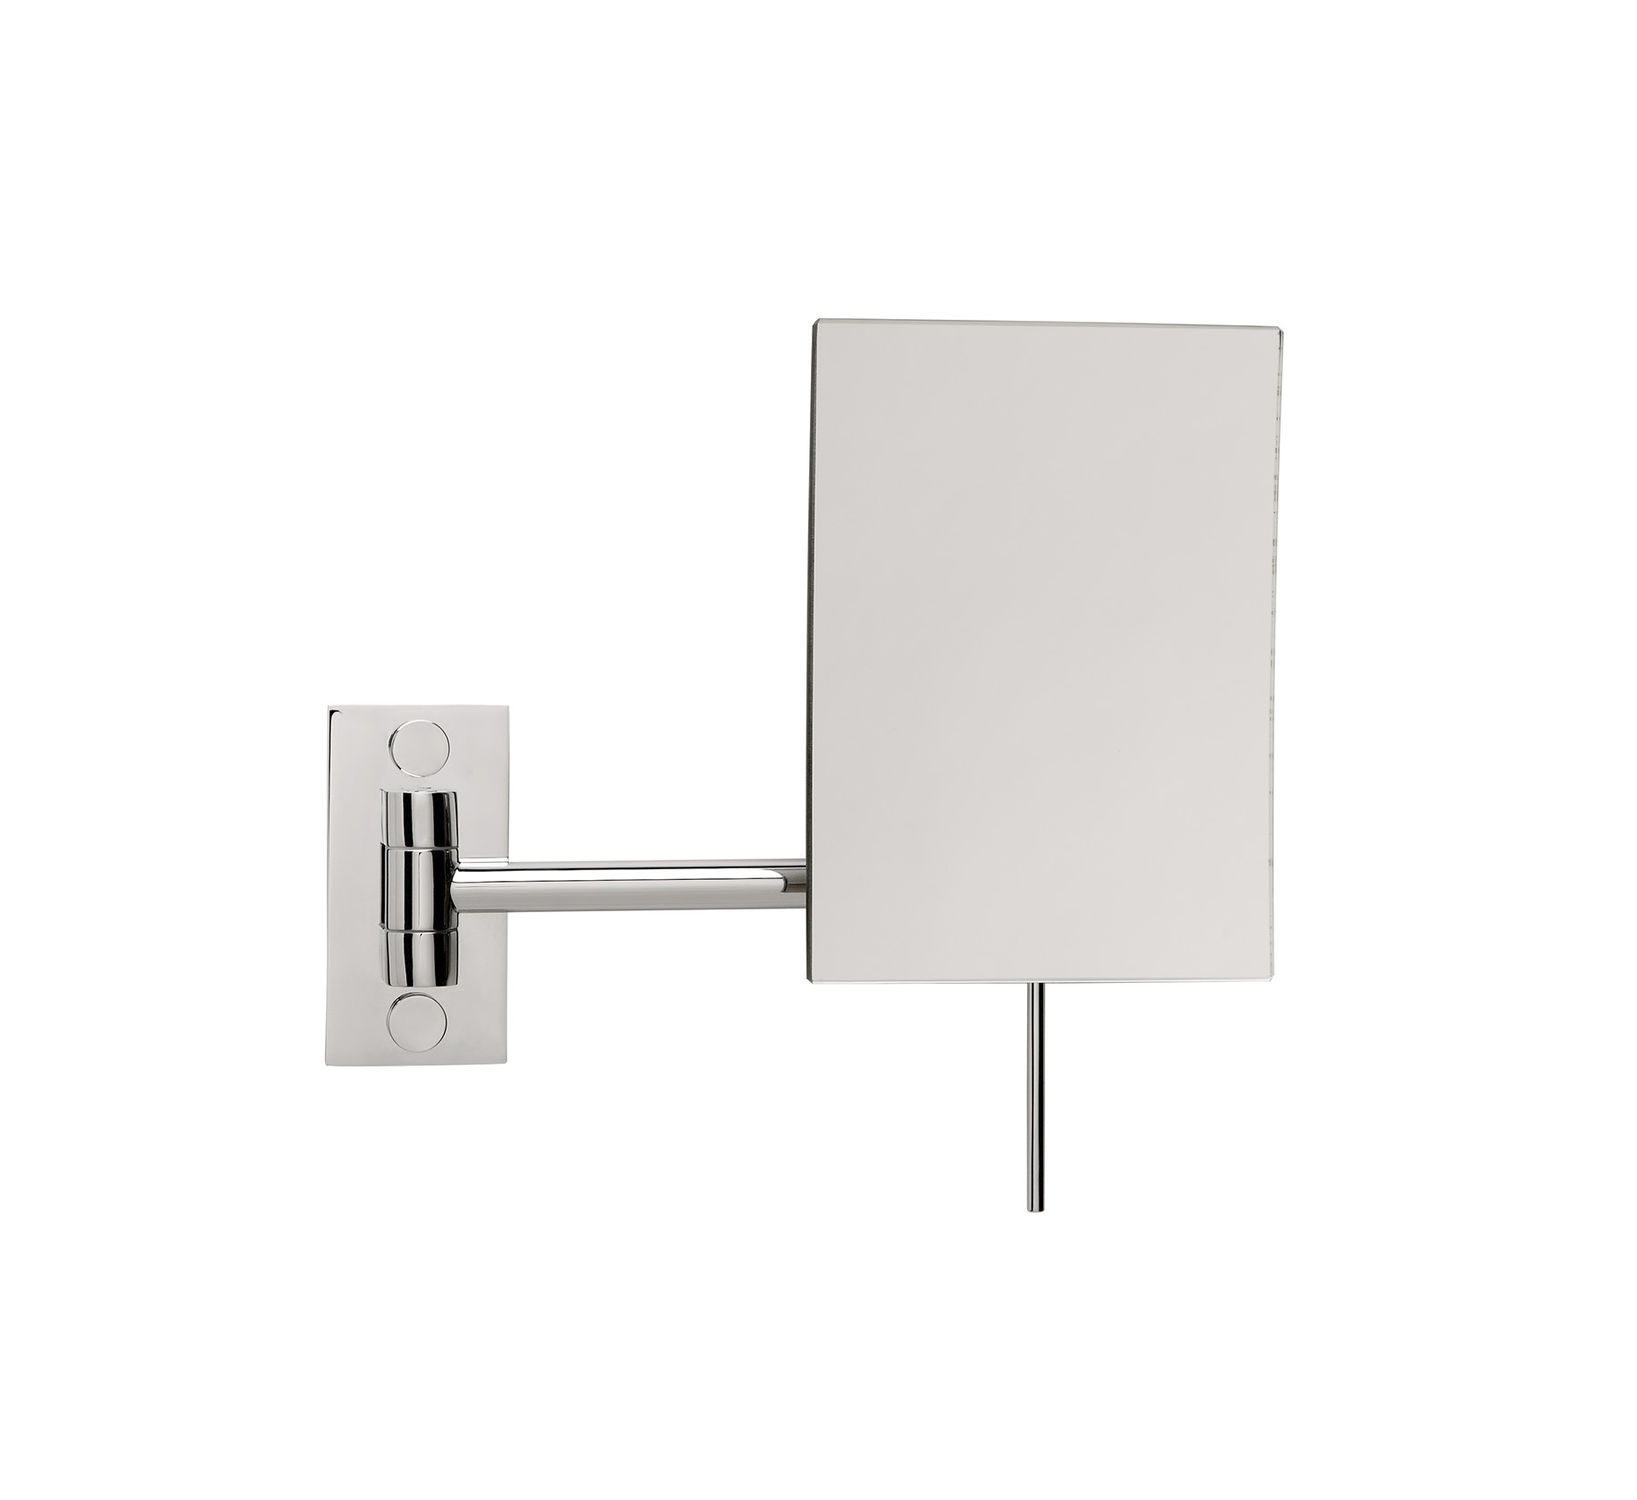 Square Extendable Bathroom Mirror  Httpdrrw  Pinterest Simple Extendable Bathroom Mirror Decorating Inspiration